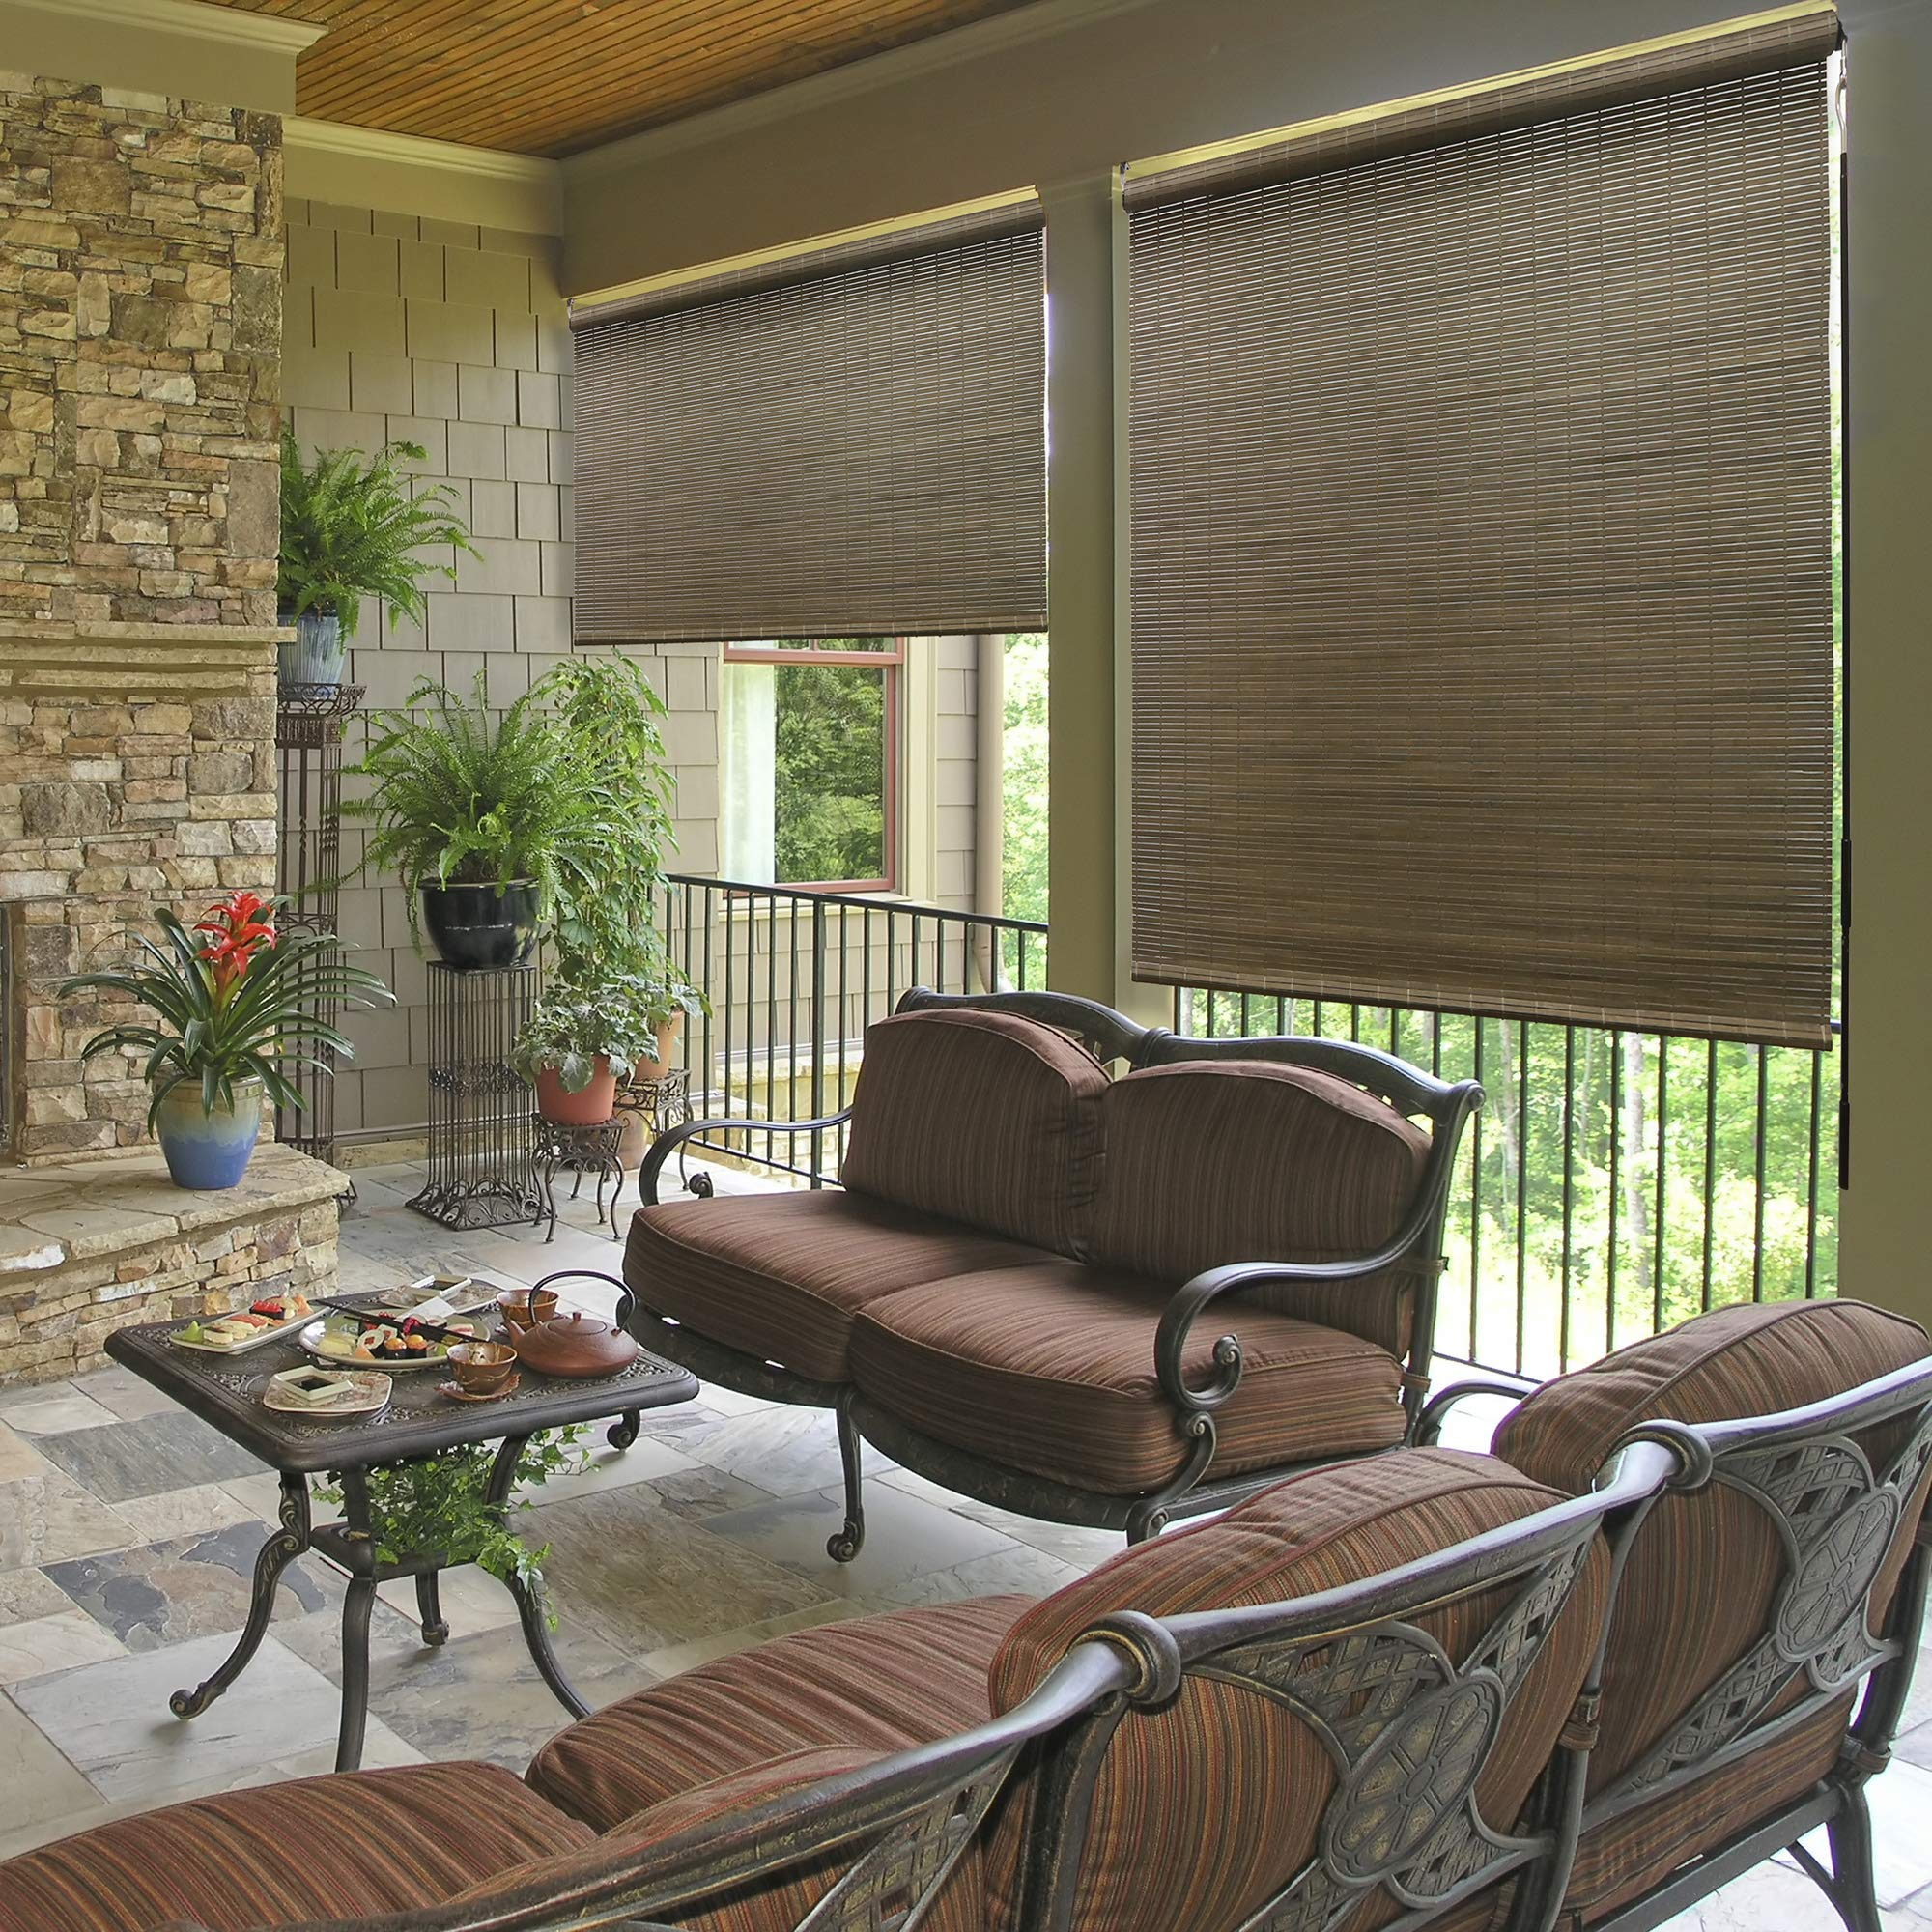 Lewis Hyman All Natural Bamboo Crank Shade, 96 In. W x 72 In. L by Lewis Hyman